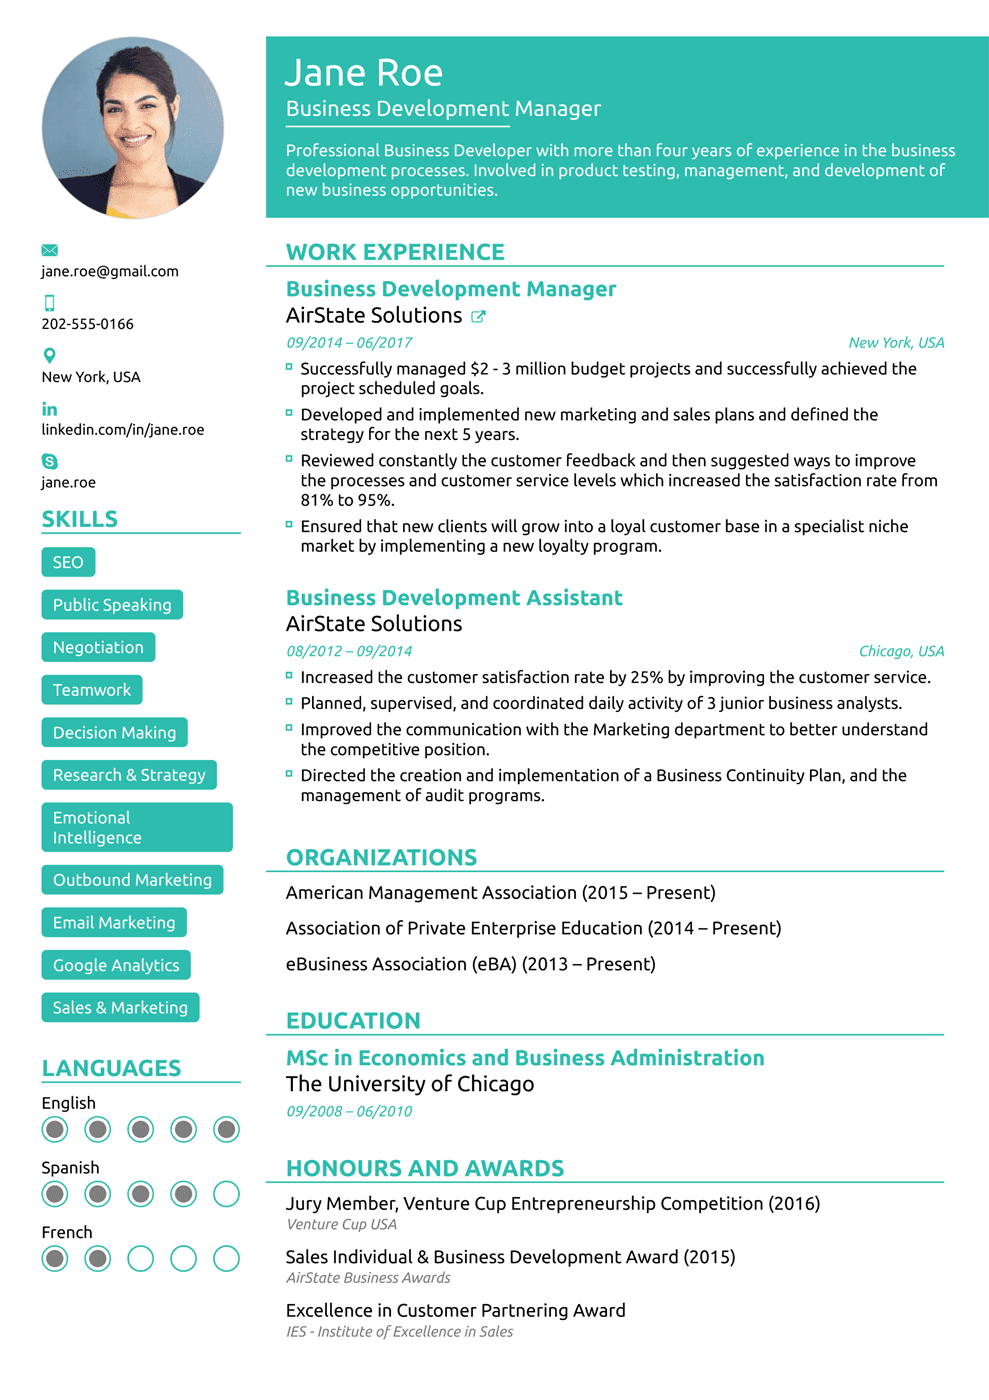 ressume template - 8 best online resume templates of 2019 download customize